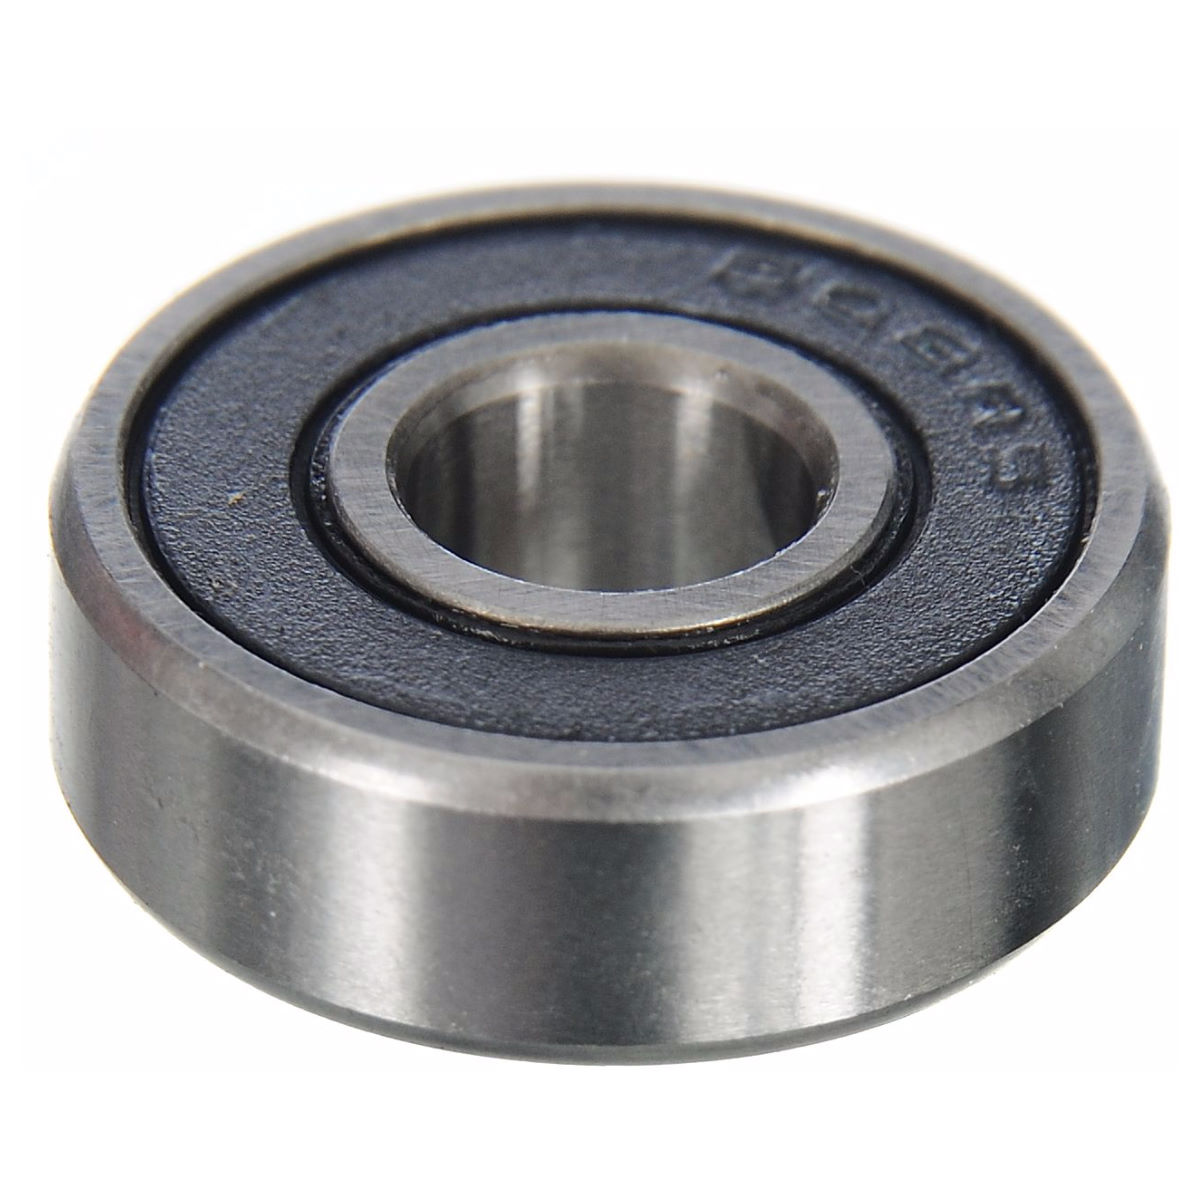 Brand-X Brand-X Sealed Bearing - 608 2RS Bearing   Wheel Hub Spares